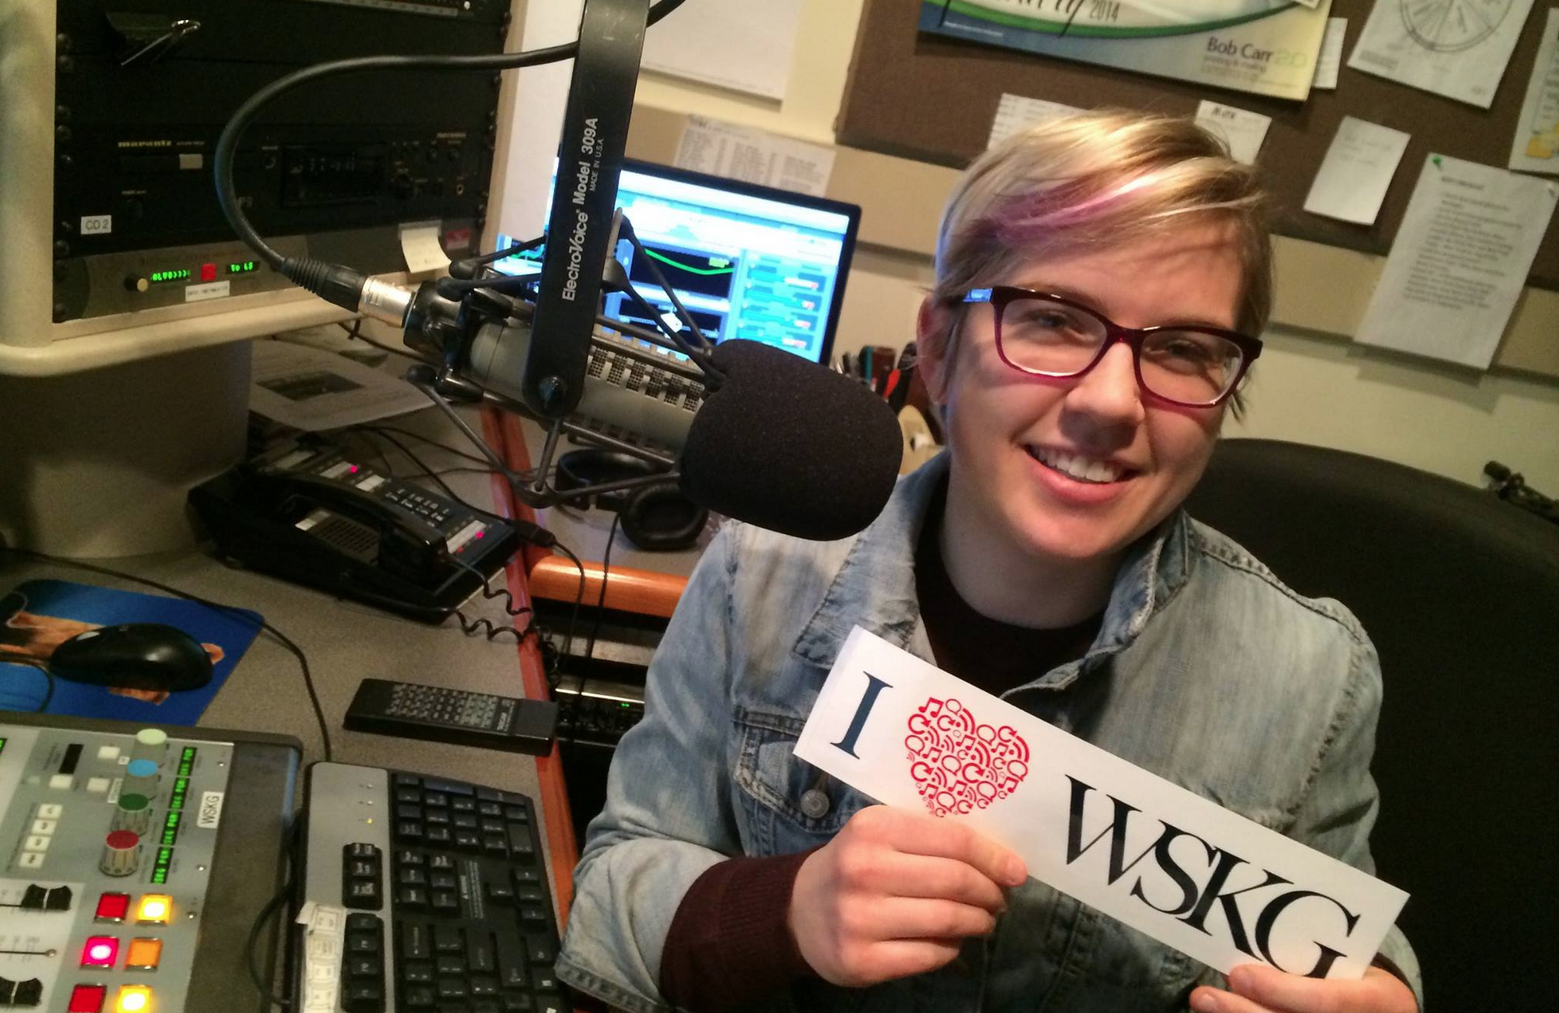 Morning Edition host and reporter Monica Sandreczki shows her love for WSKG!